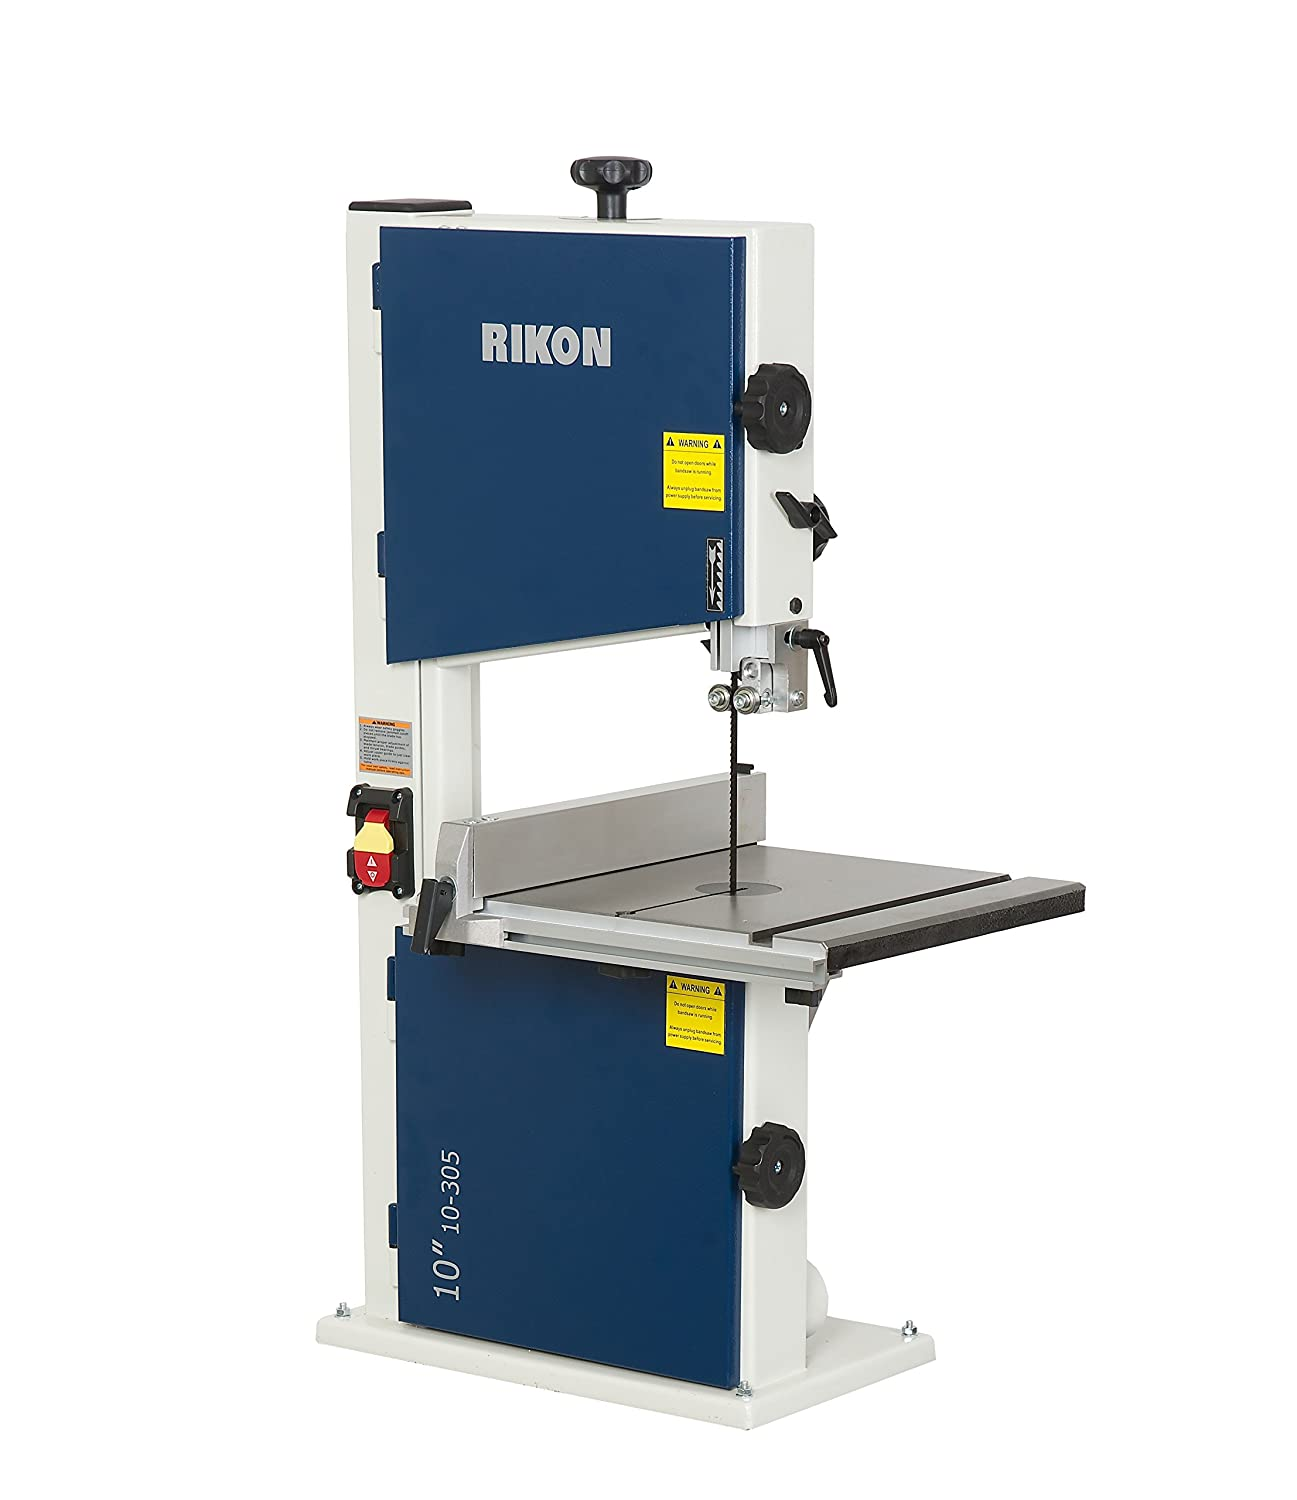 Rikon 10 305 bandsaw with fence review 2016 updated for 10 inch table saw blade reviews